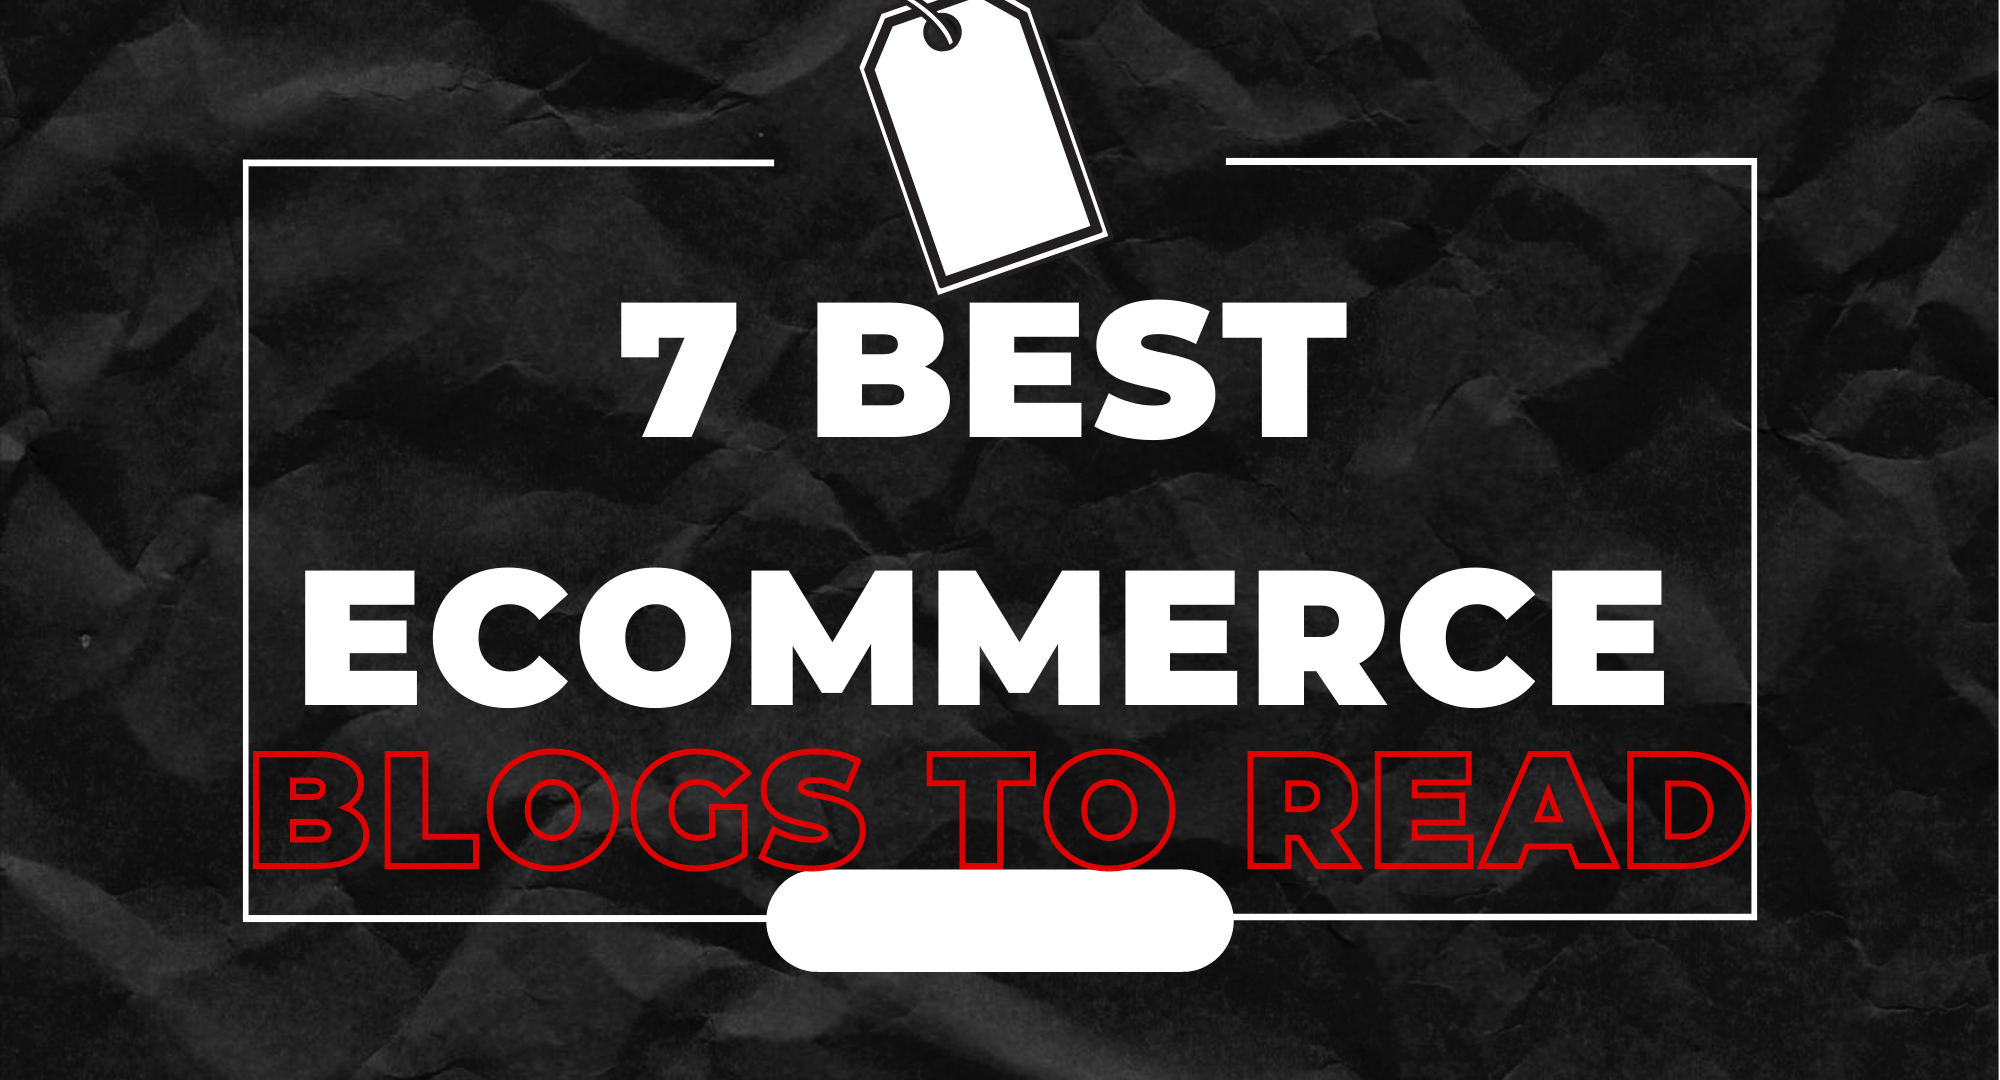 The 7 Best Ecommerce Blogs For Content Writers to Read